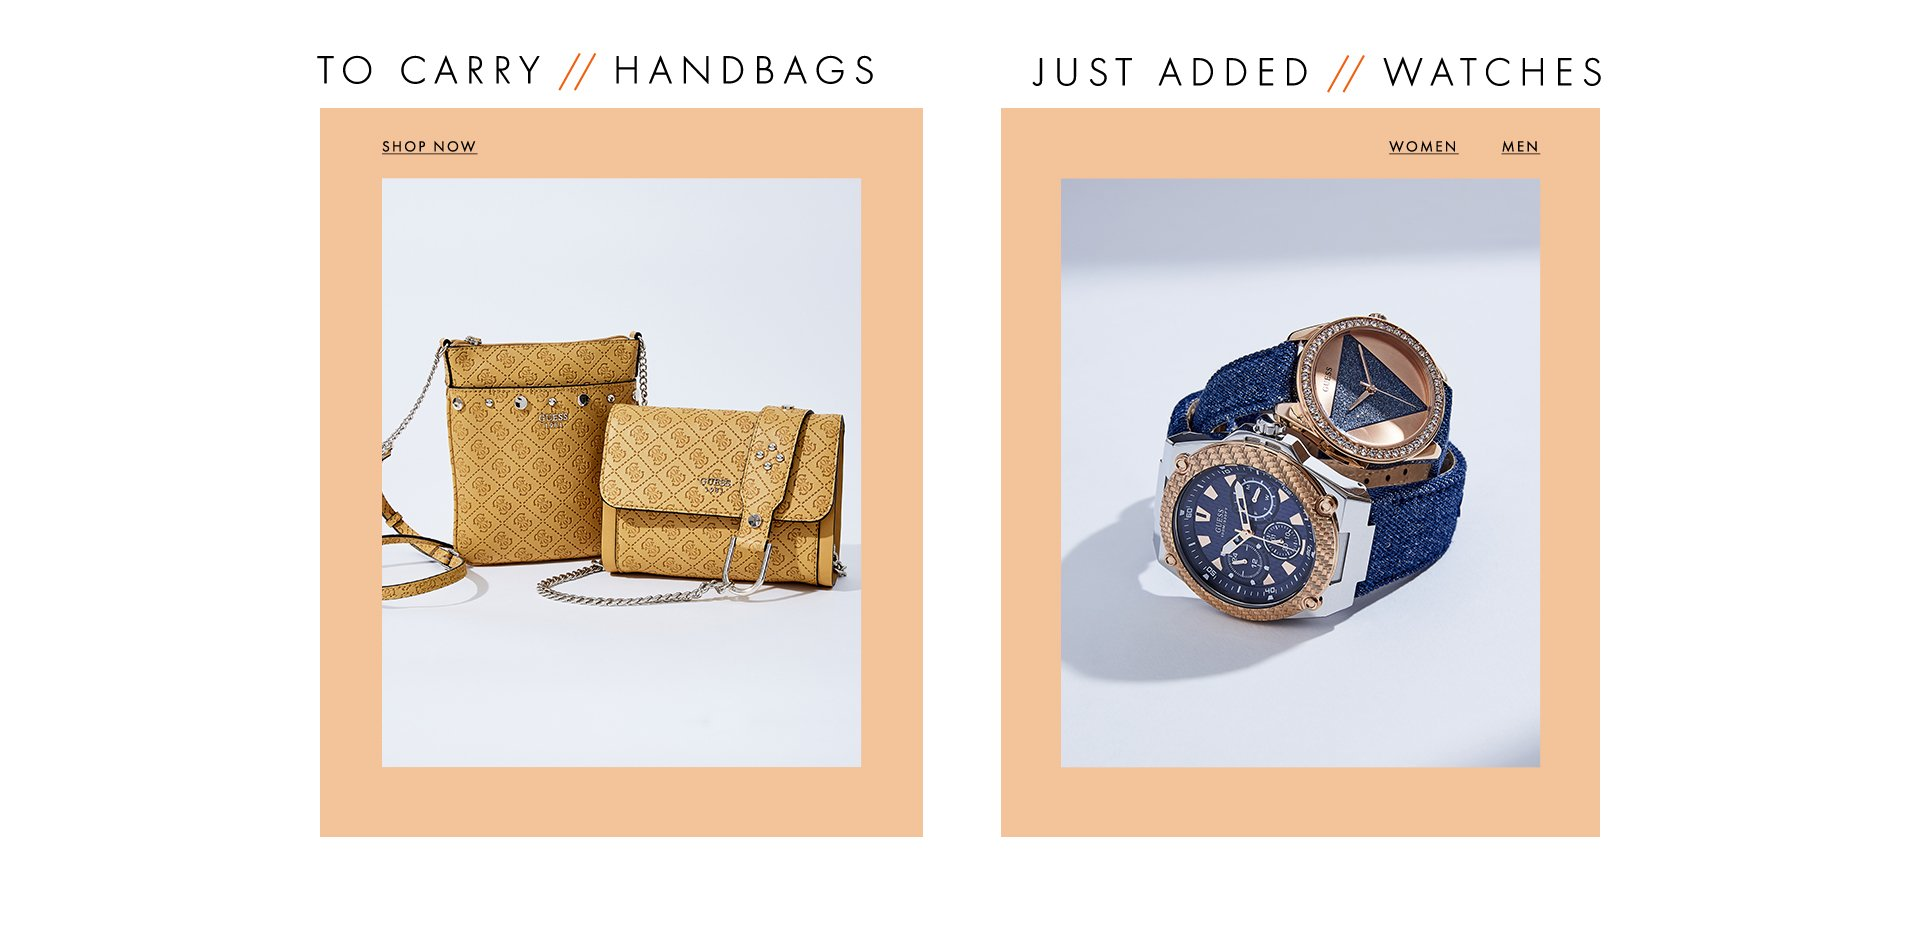 Handbags and watches